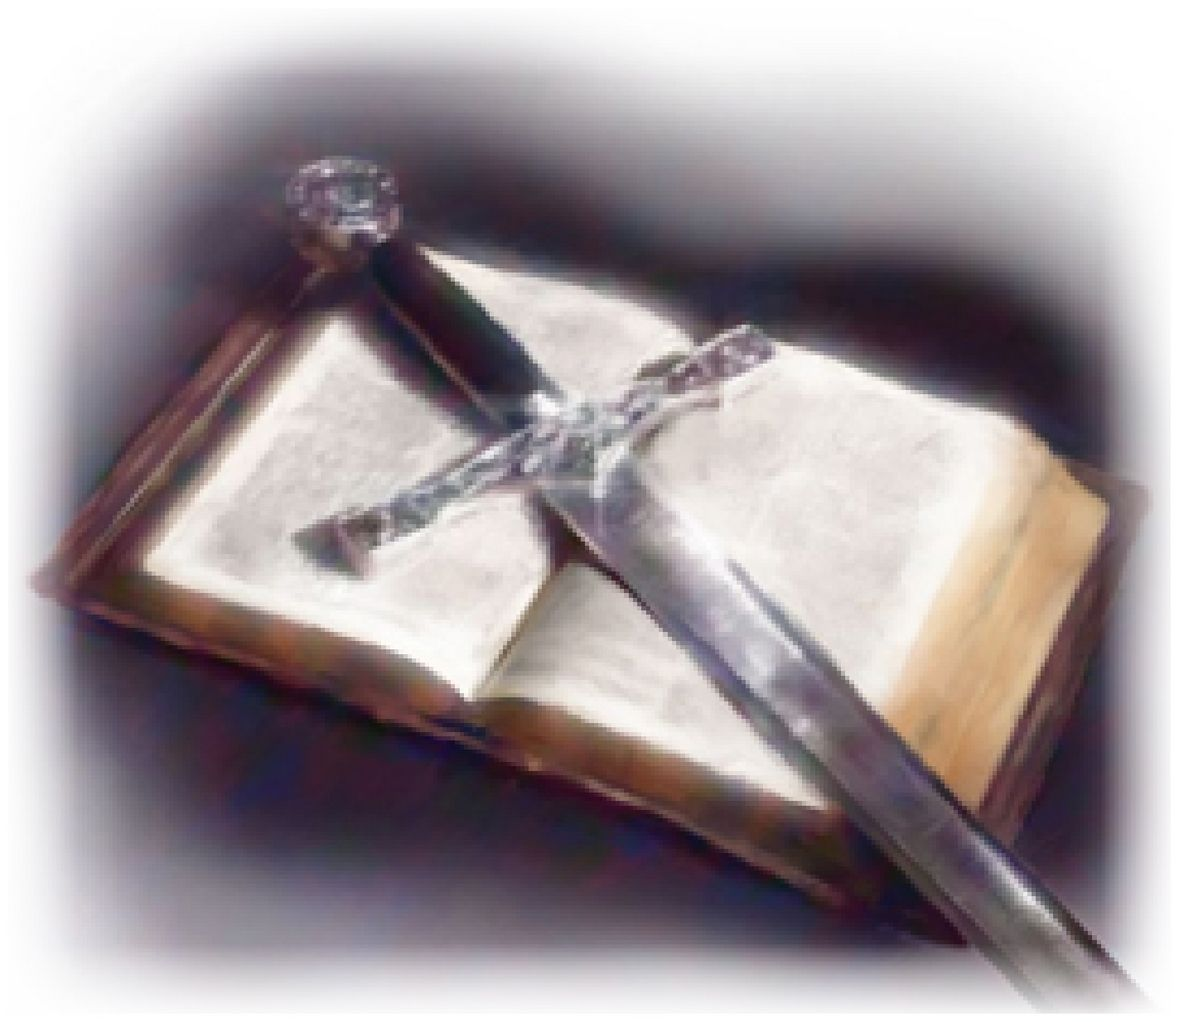 Sword In The Bible Quote: We Believe The King James Bible Is The First